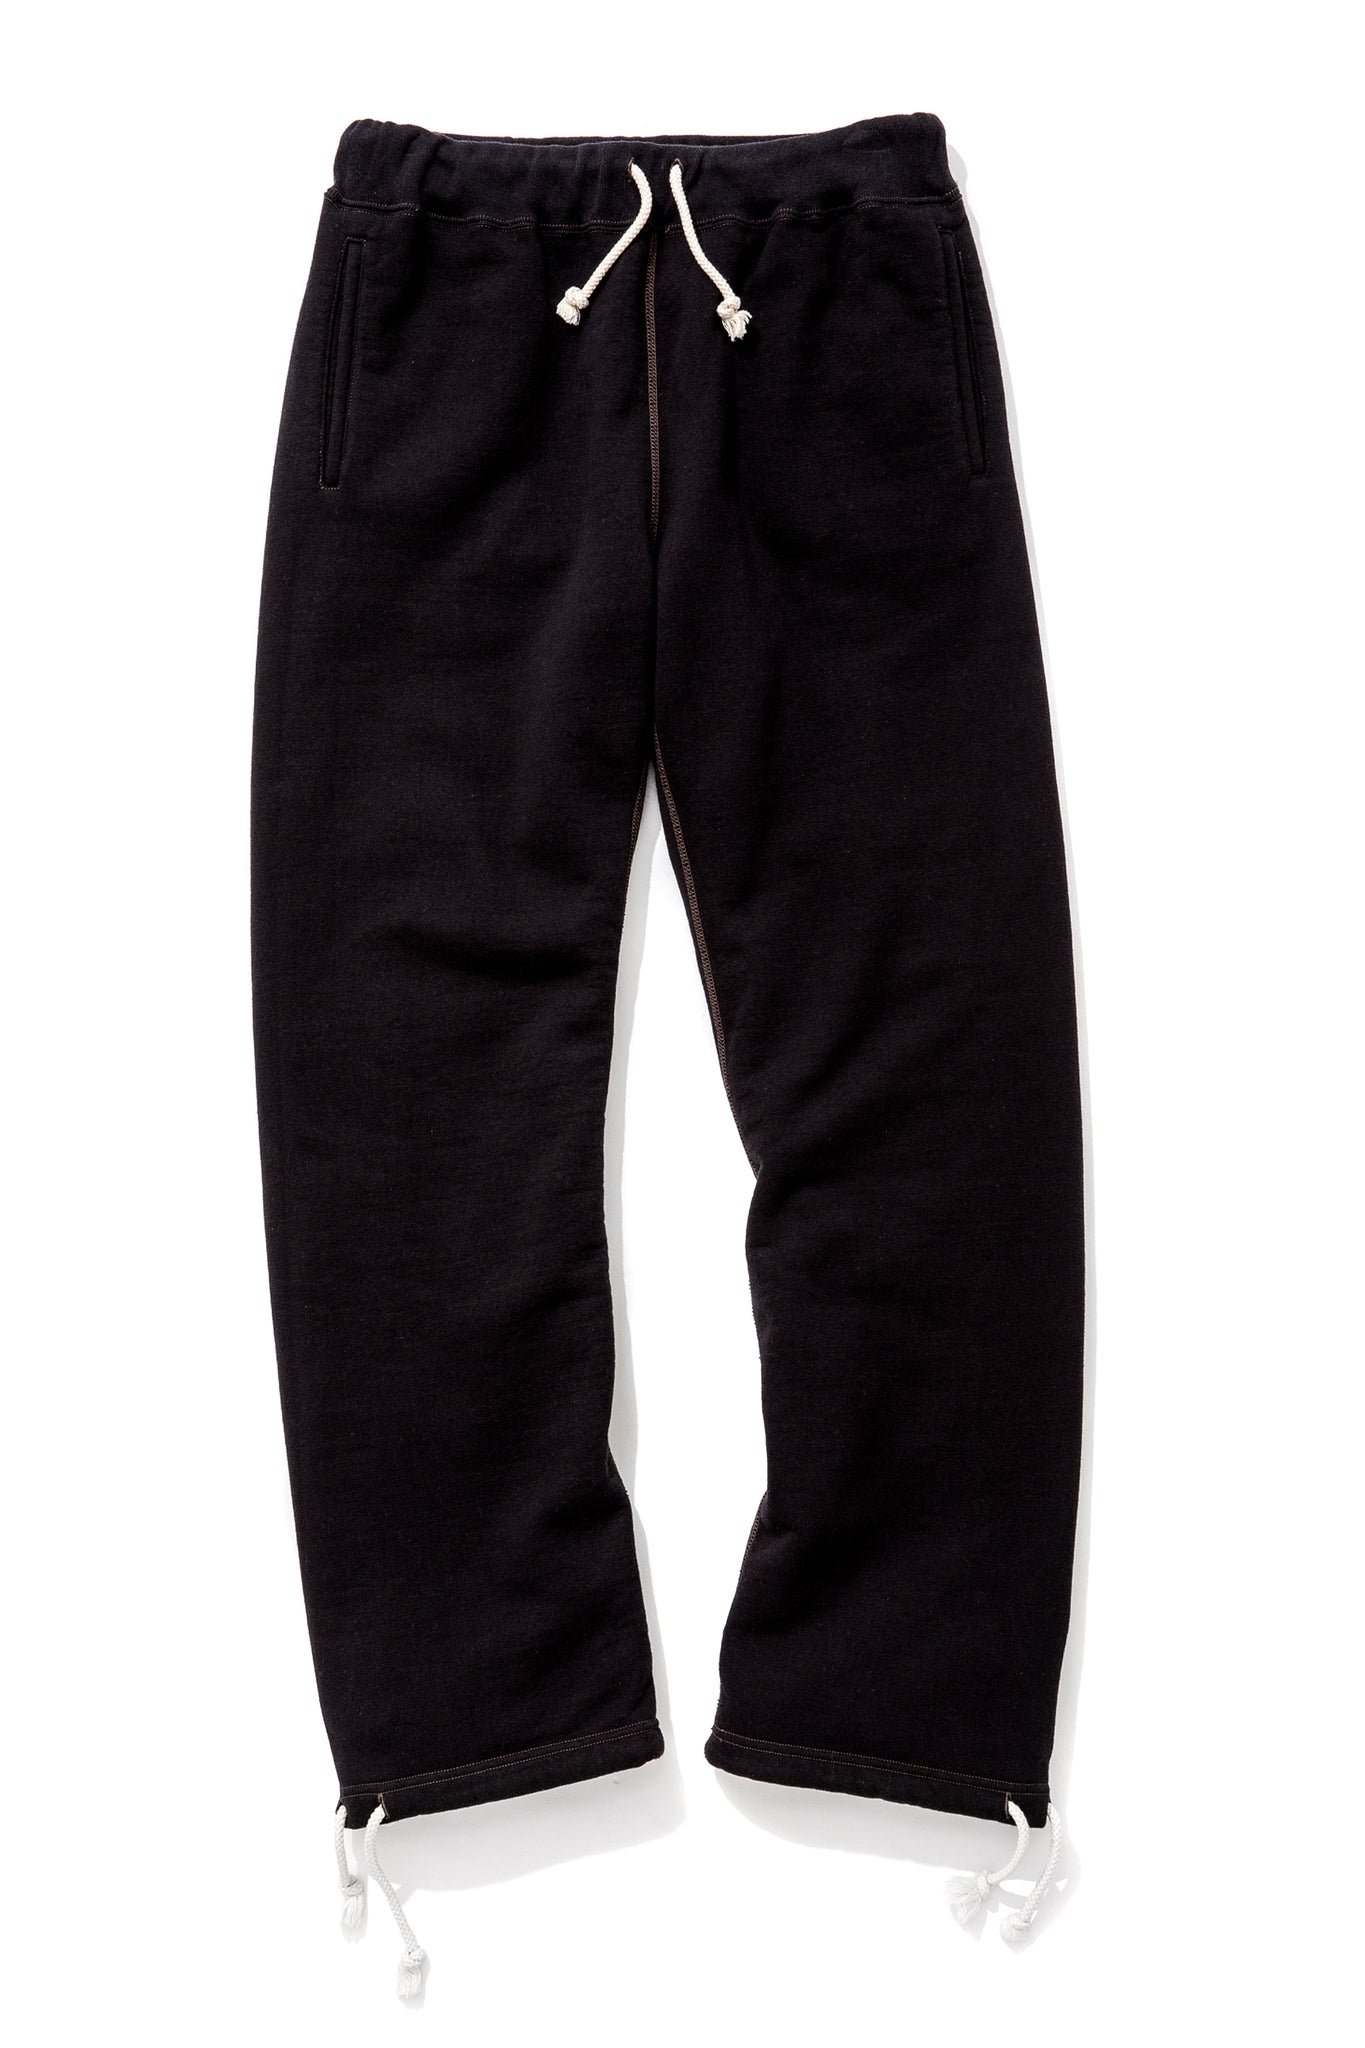 Ball Park Sweatpants